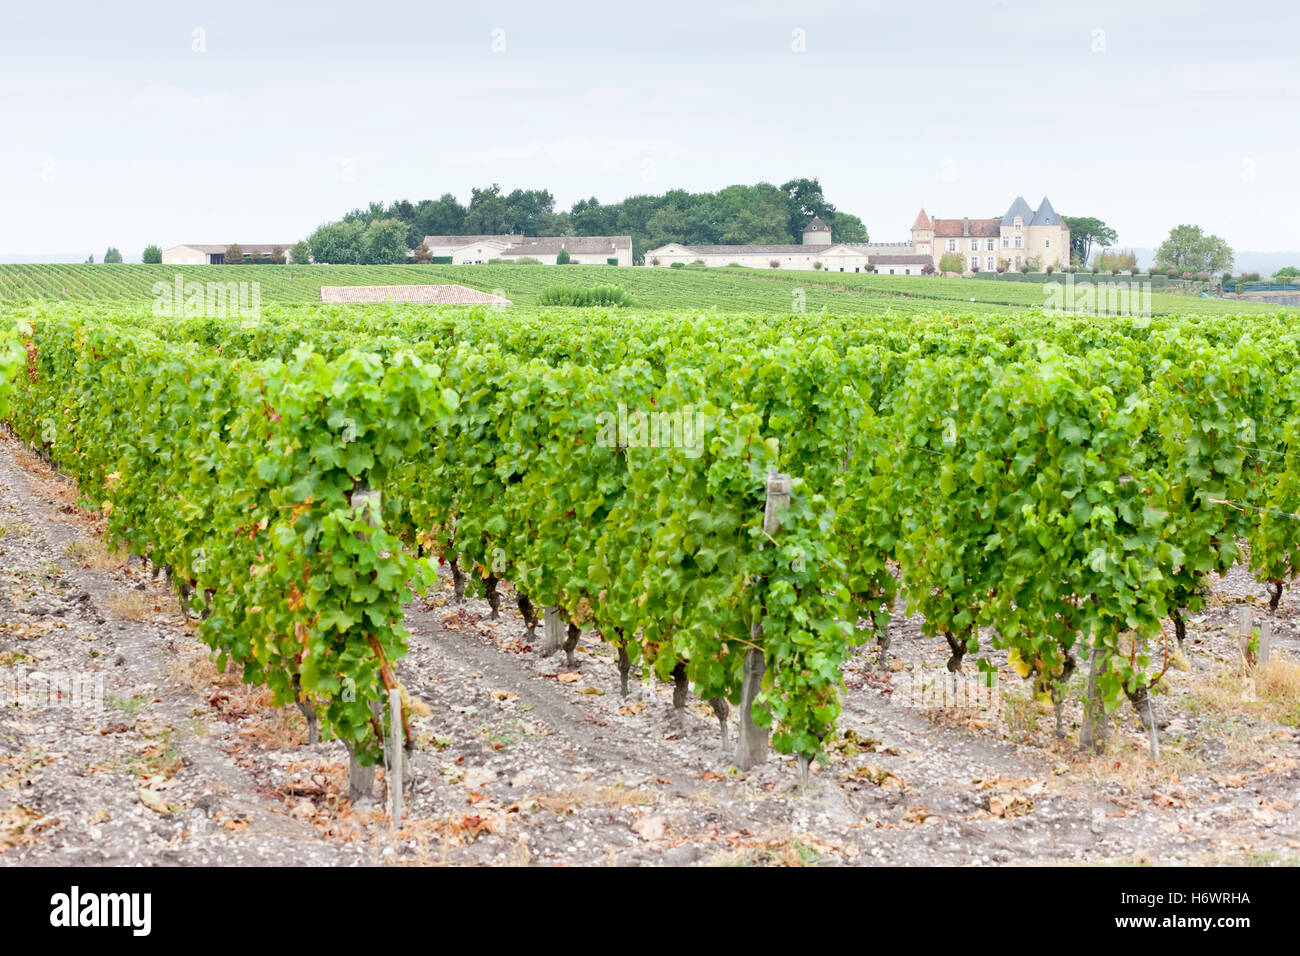 arrangement travel agriculture farming europe vineyard france outside style of construction architecture architectural Stock Photo